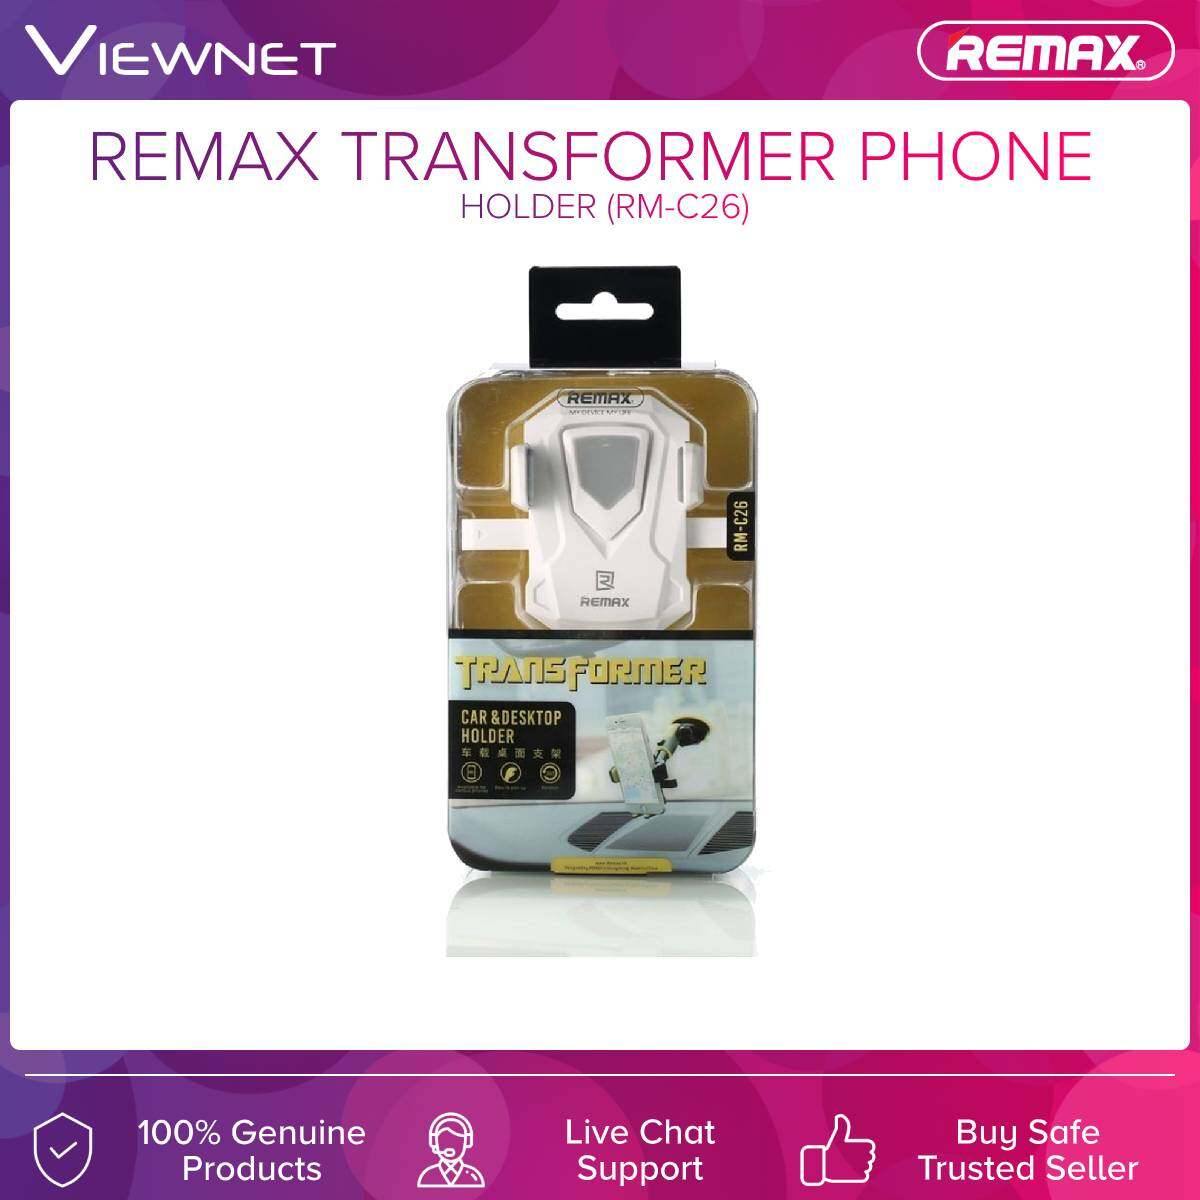 Remax (RM-C26) Transformer Series Phone Holder for Vehicle